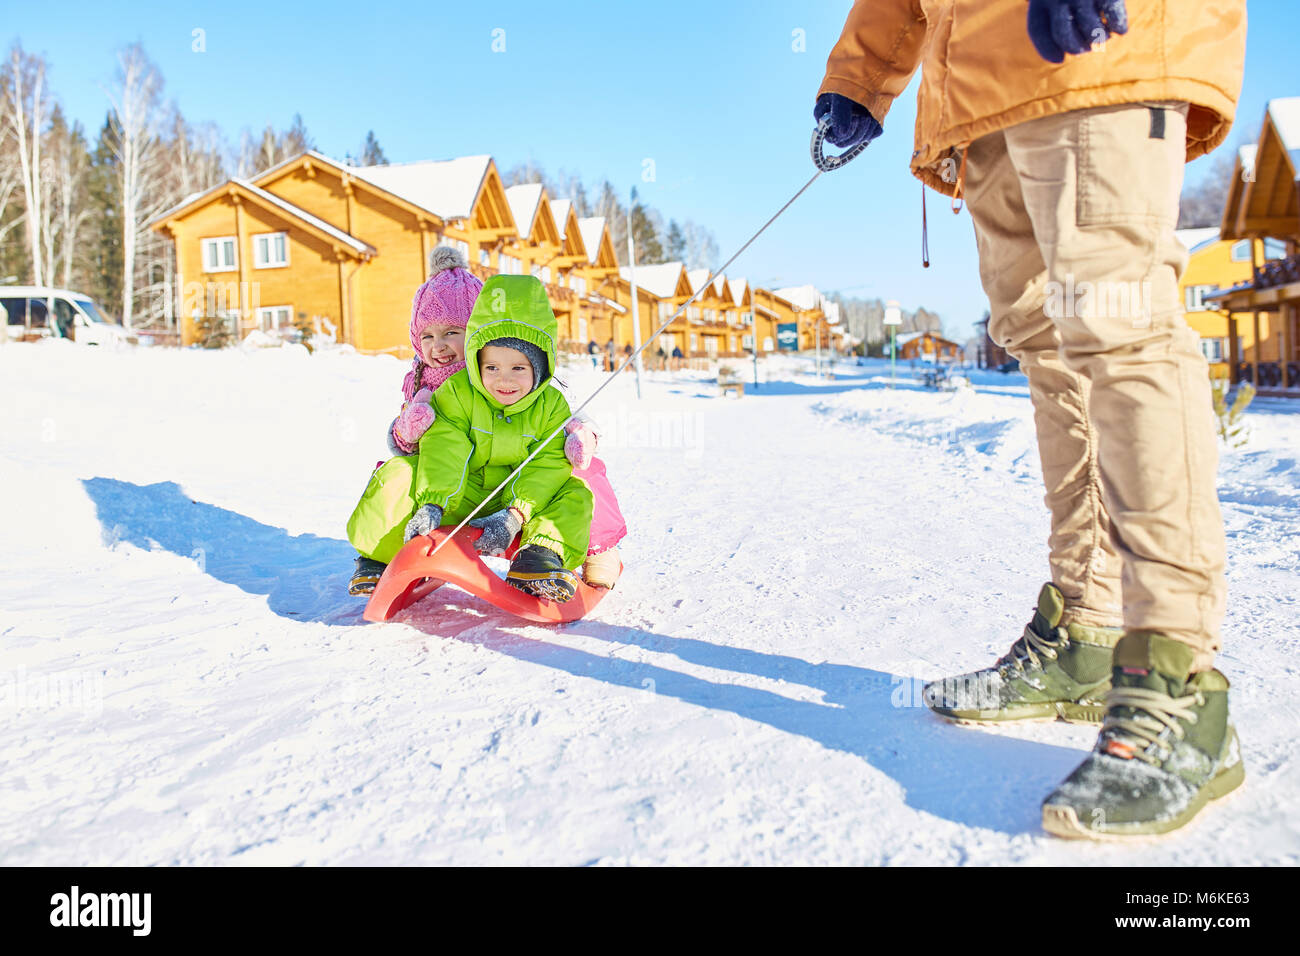 Children enjoying sleigh ride - Stock Image